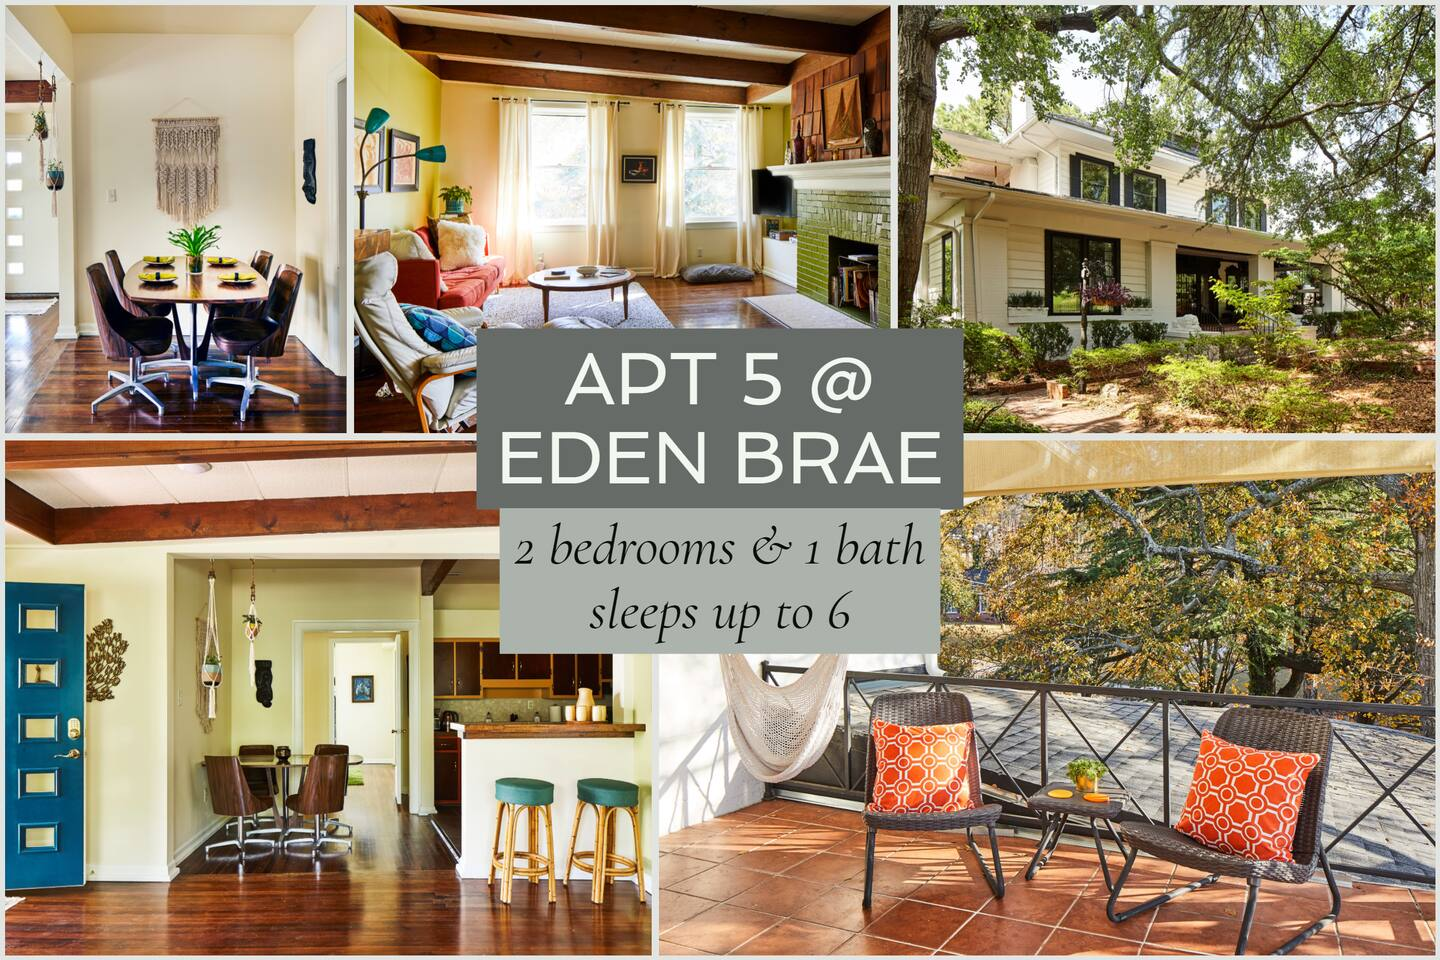 Step back in time in this retro, earthy, one-of-a-kind apartment in Eden Brae, a southern gothic mansion. Stylish and modern, you'll love the open kitchen and living room as well as the apartment's private patio with a hammock chair. Pet-friendly.